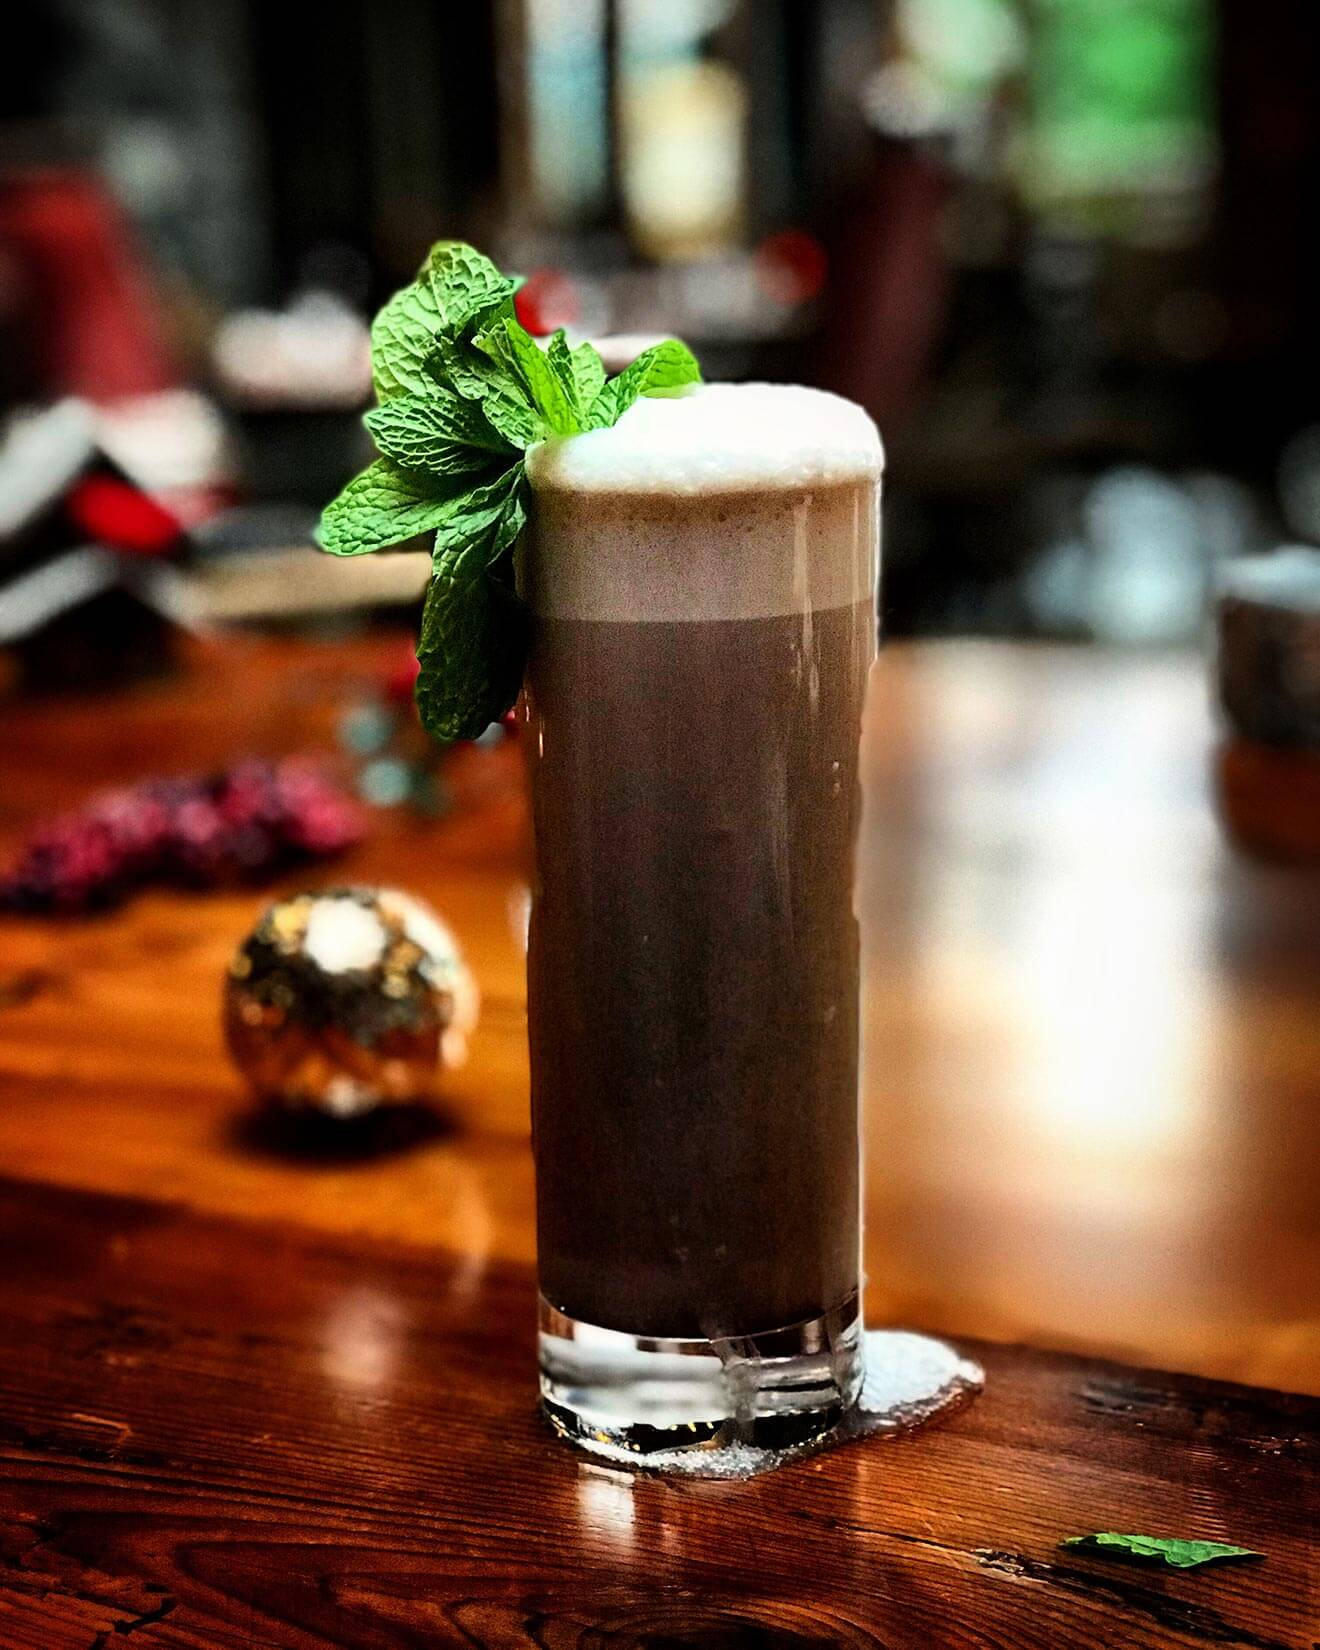 Mint Chocolate Fizz, cocktail with garnish, holiday decorations